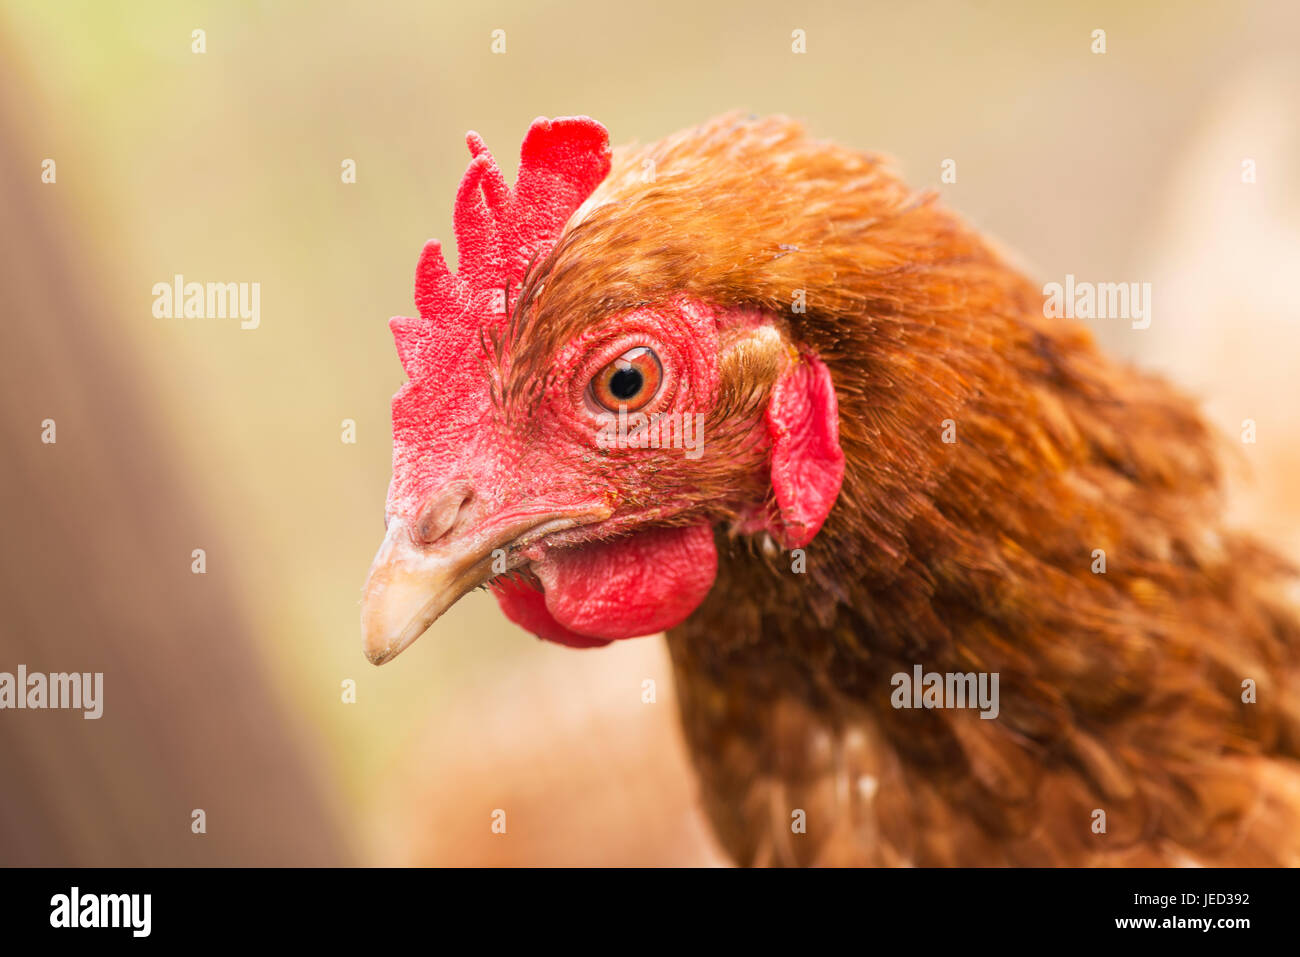 A red domestic chicken in the garden with copy space. - Stock Image